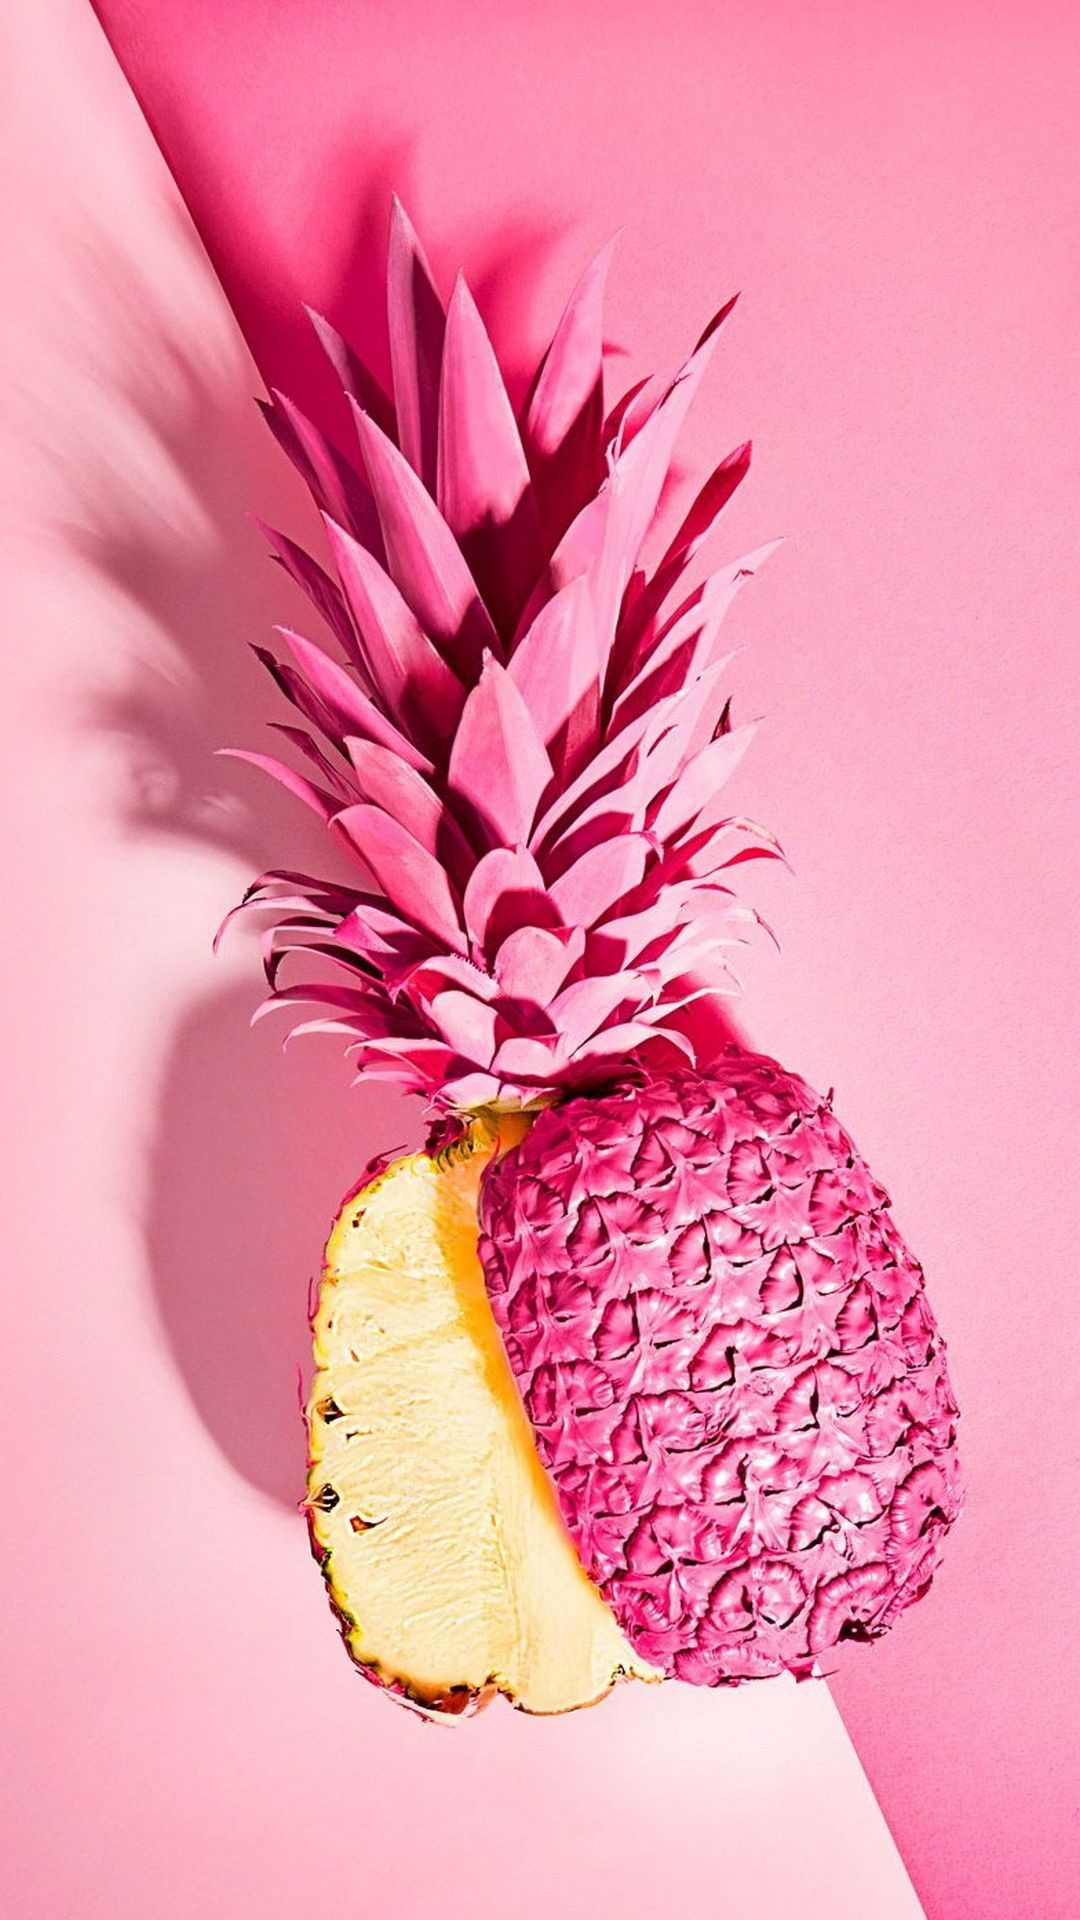 Pink Pineapple Mobile Wallpaper | Best HD Wallpapers | Wallpaperscute in 2019 | Pink pineapple ...